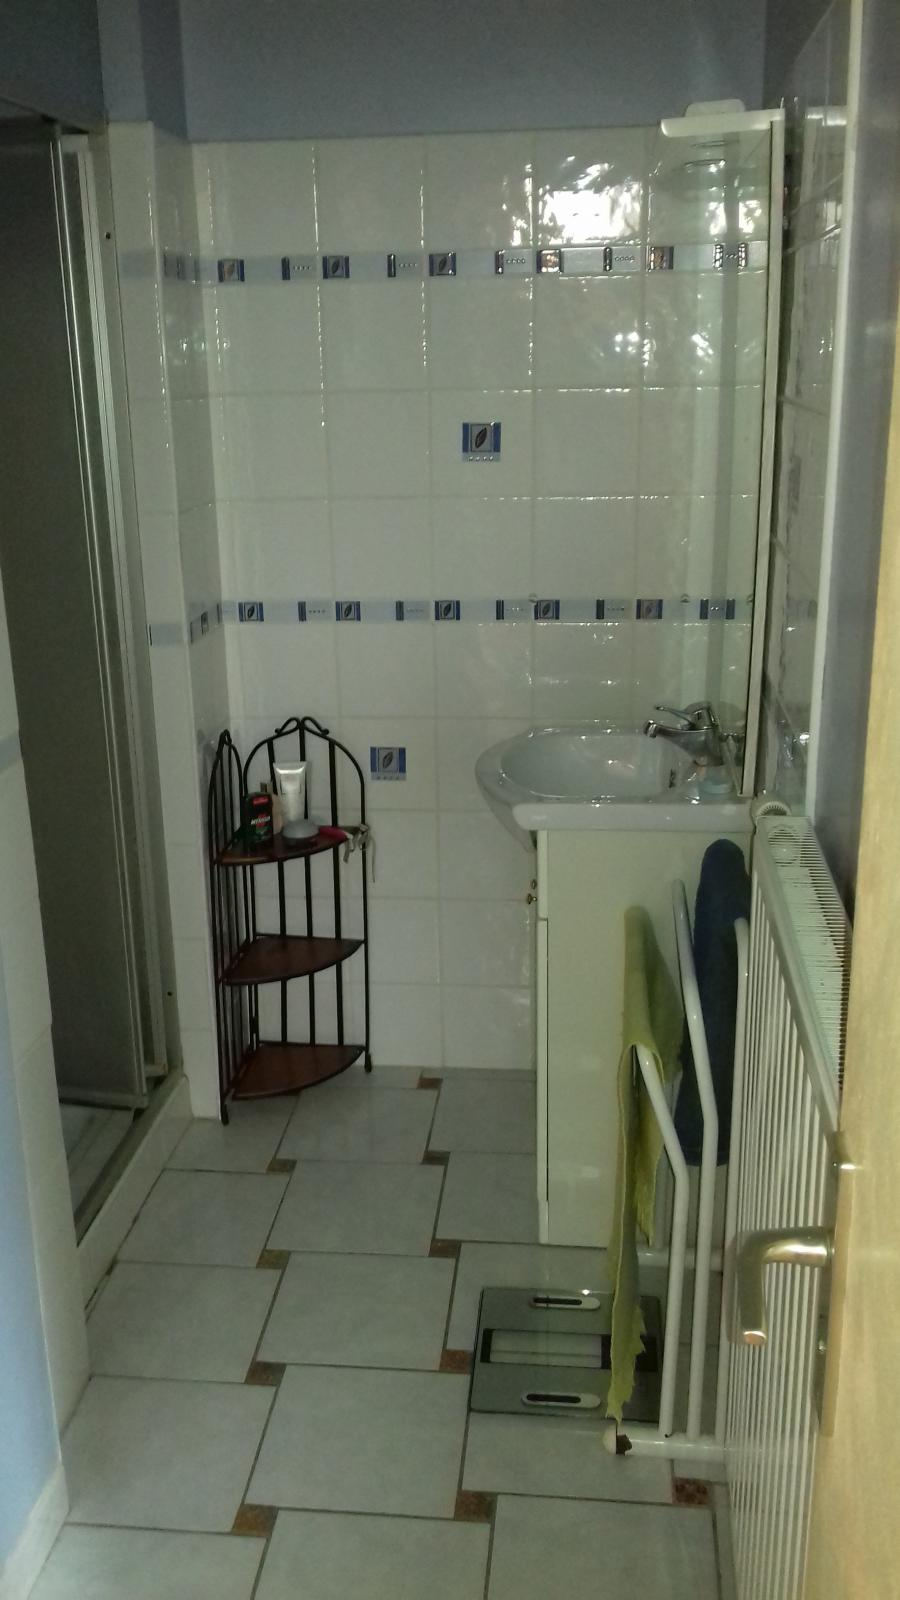 Photo 8 - Shower room